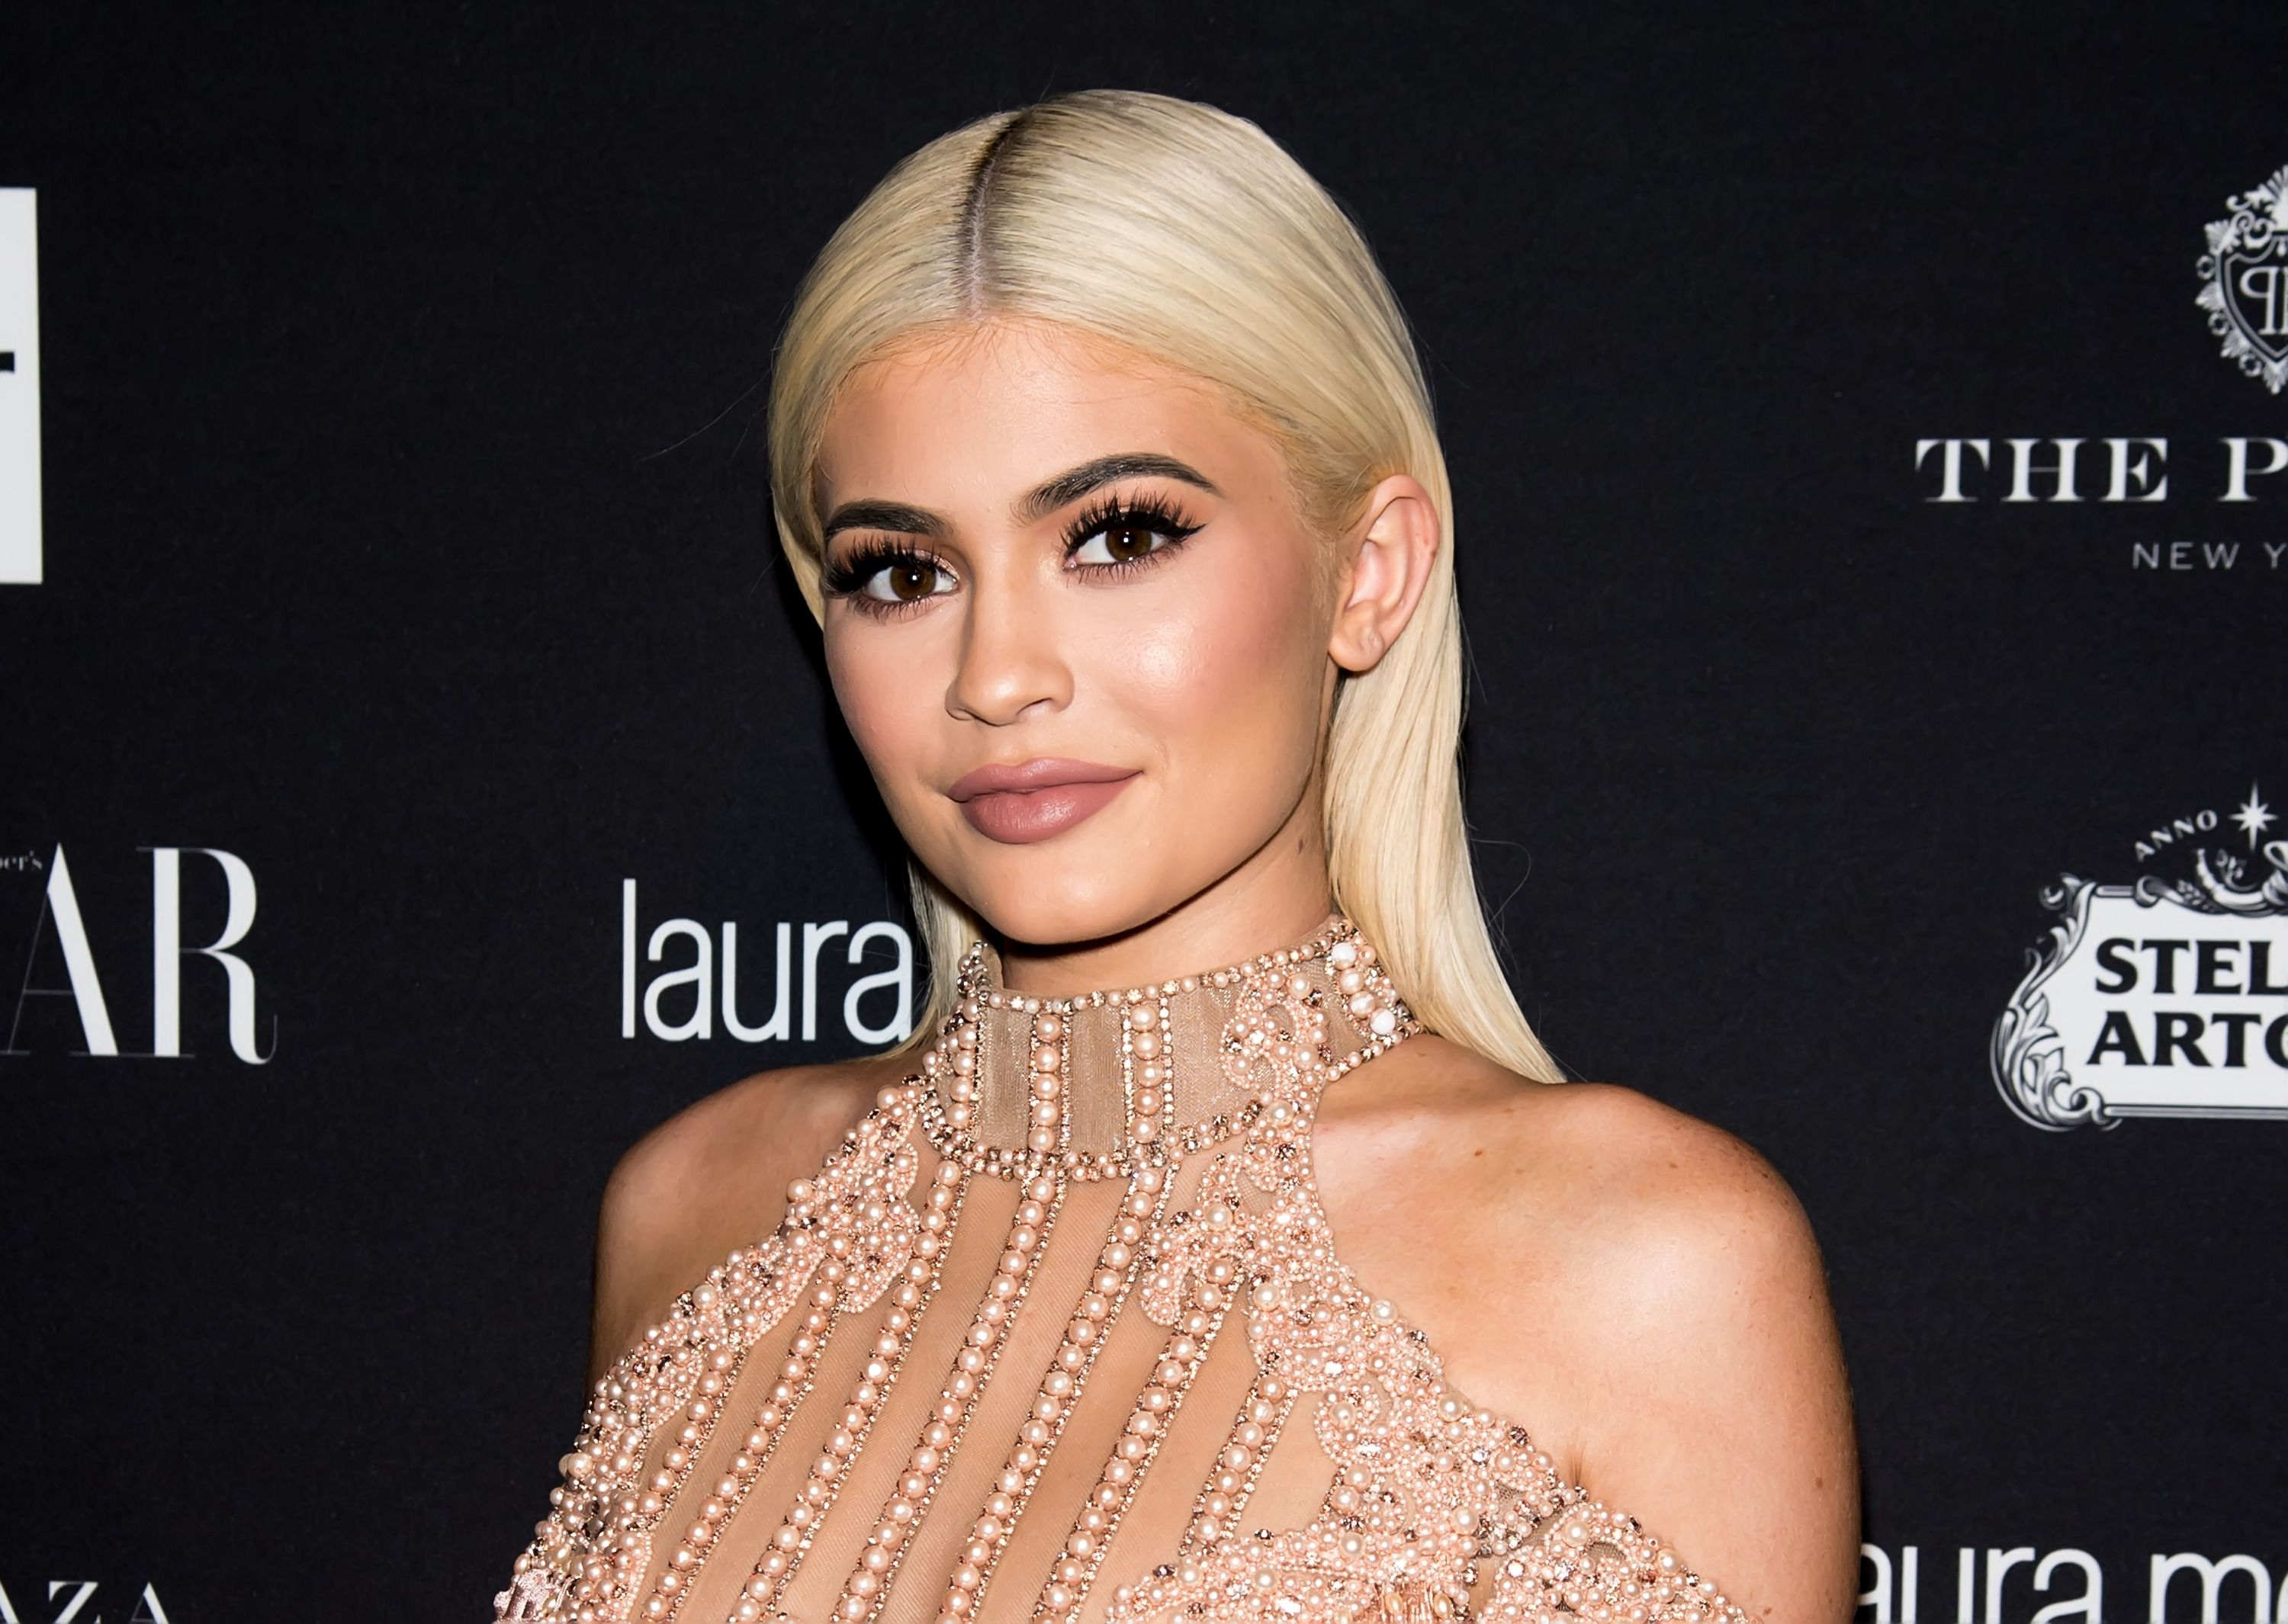 """Keeping Up With the Kardashian's star Kylie Jenner at Harper's BAZAAR Celebrates 'ICONS By Carine Roitfeld' at The Plaza Hotel in New York City